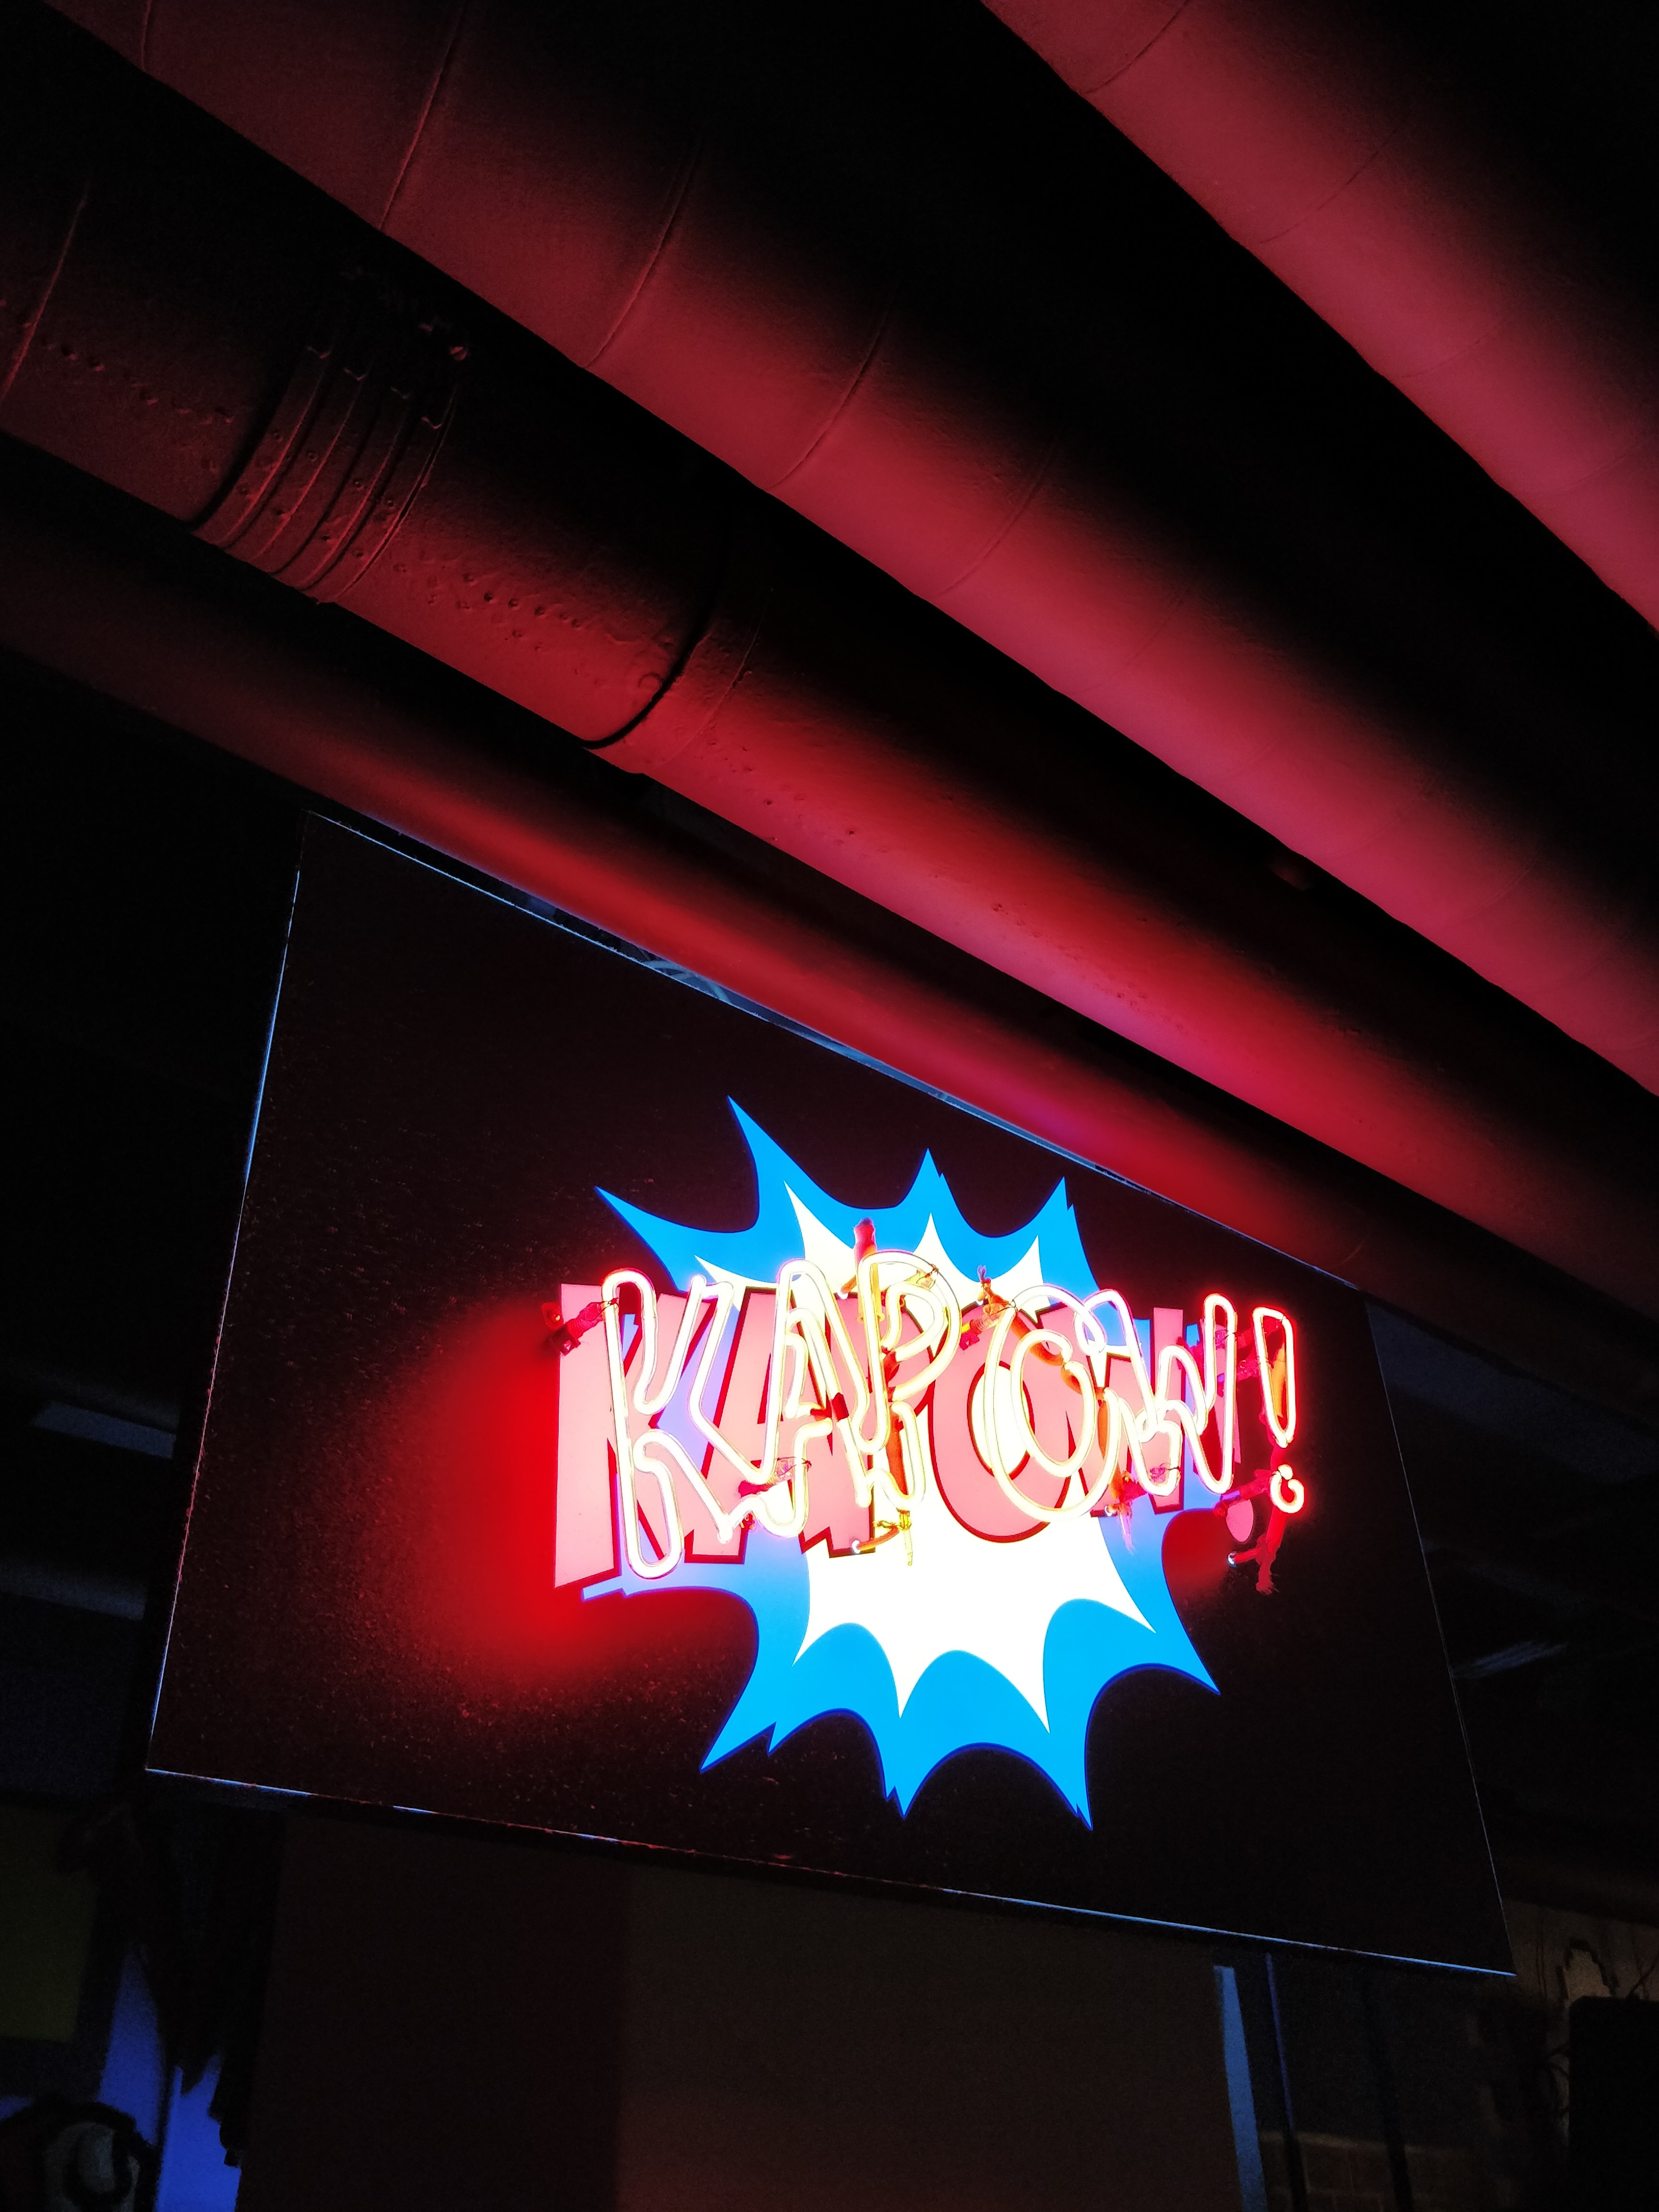 turned-on yellow and blue kapow! neon sign